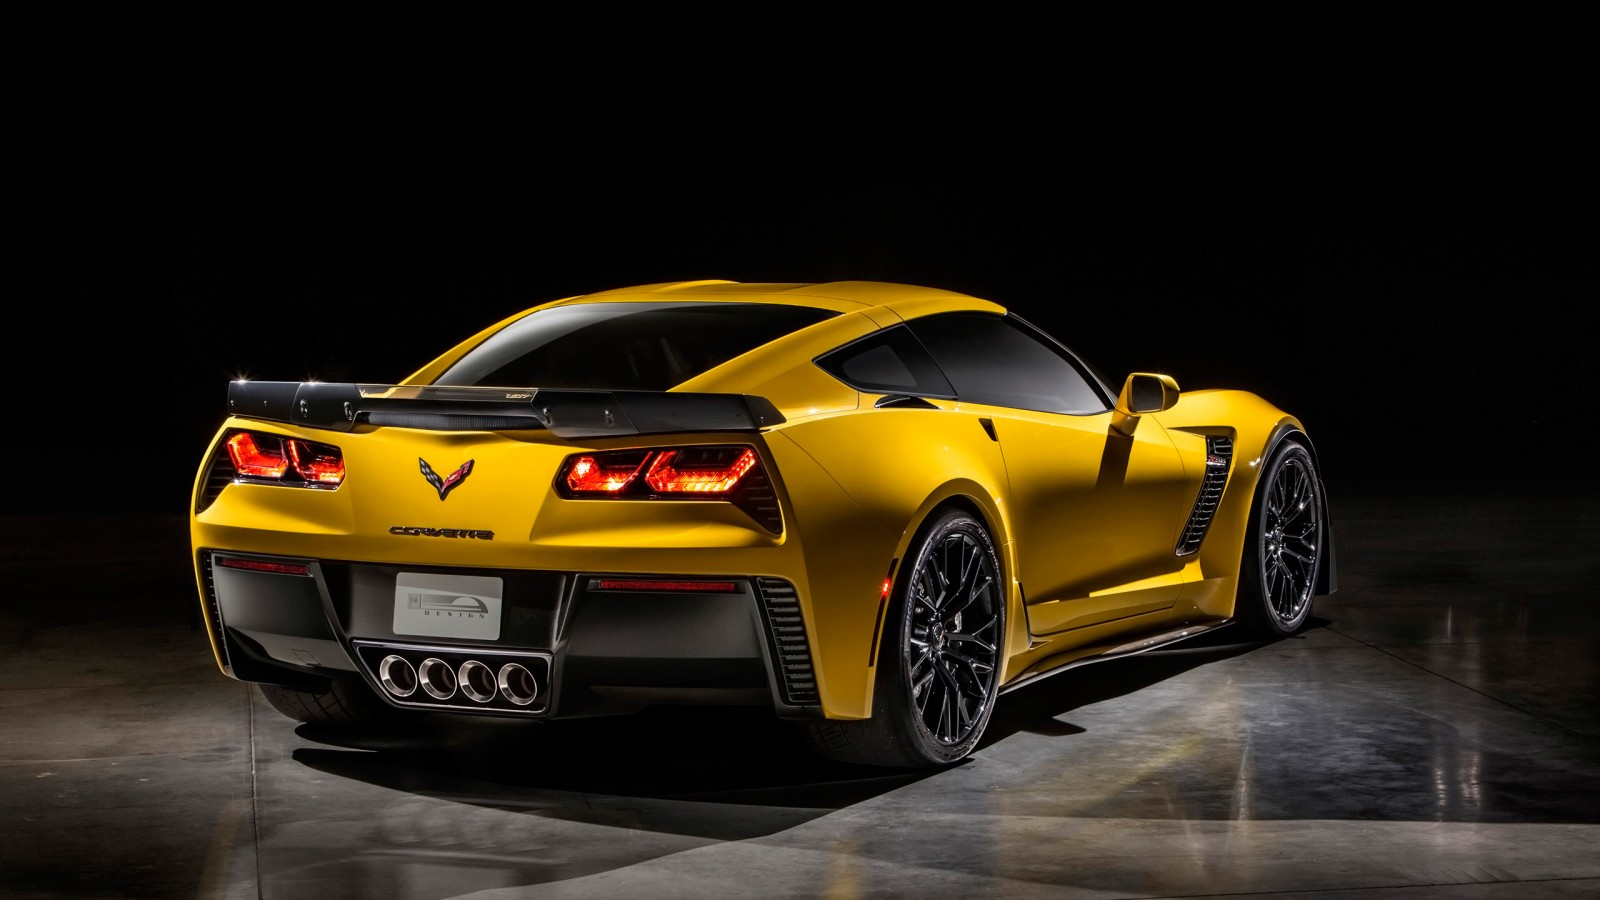 2015 Chevrolet Corvette Z06 2 Wallpaper Hd Car